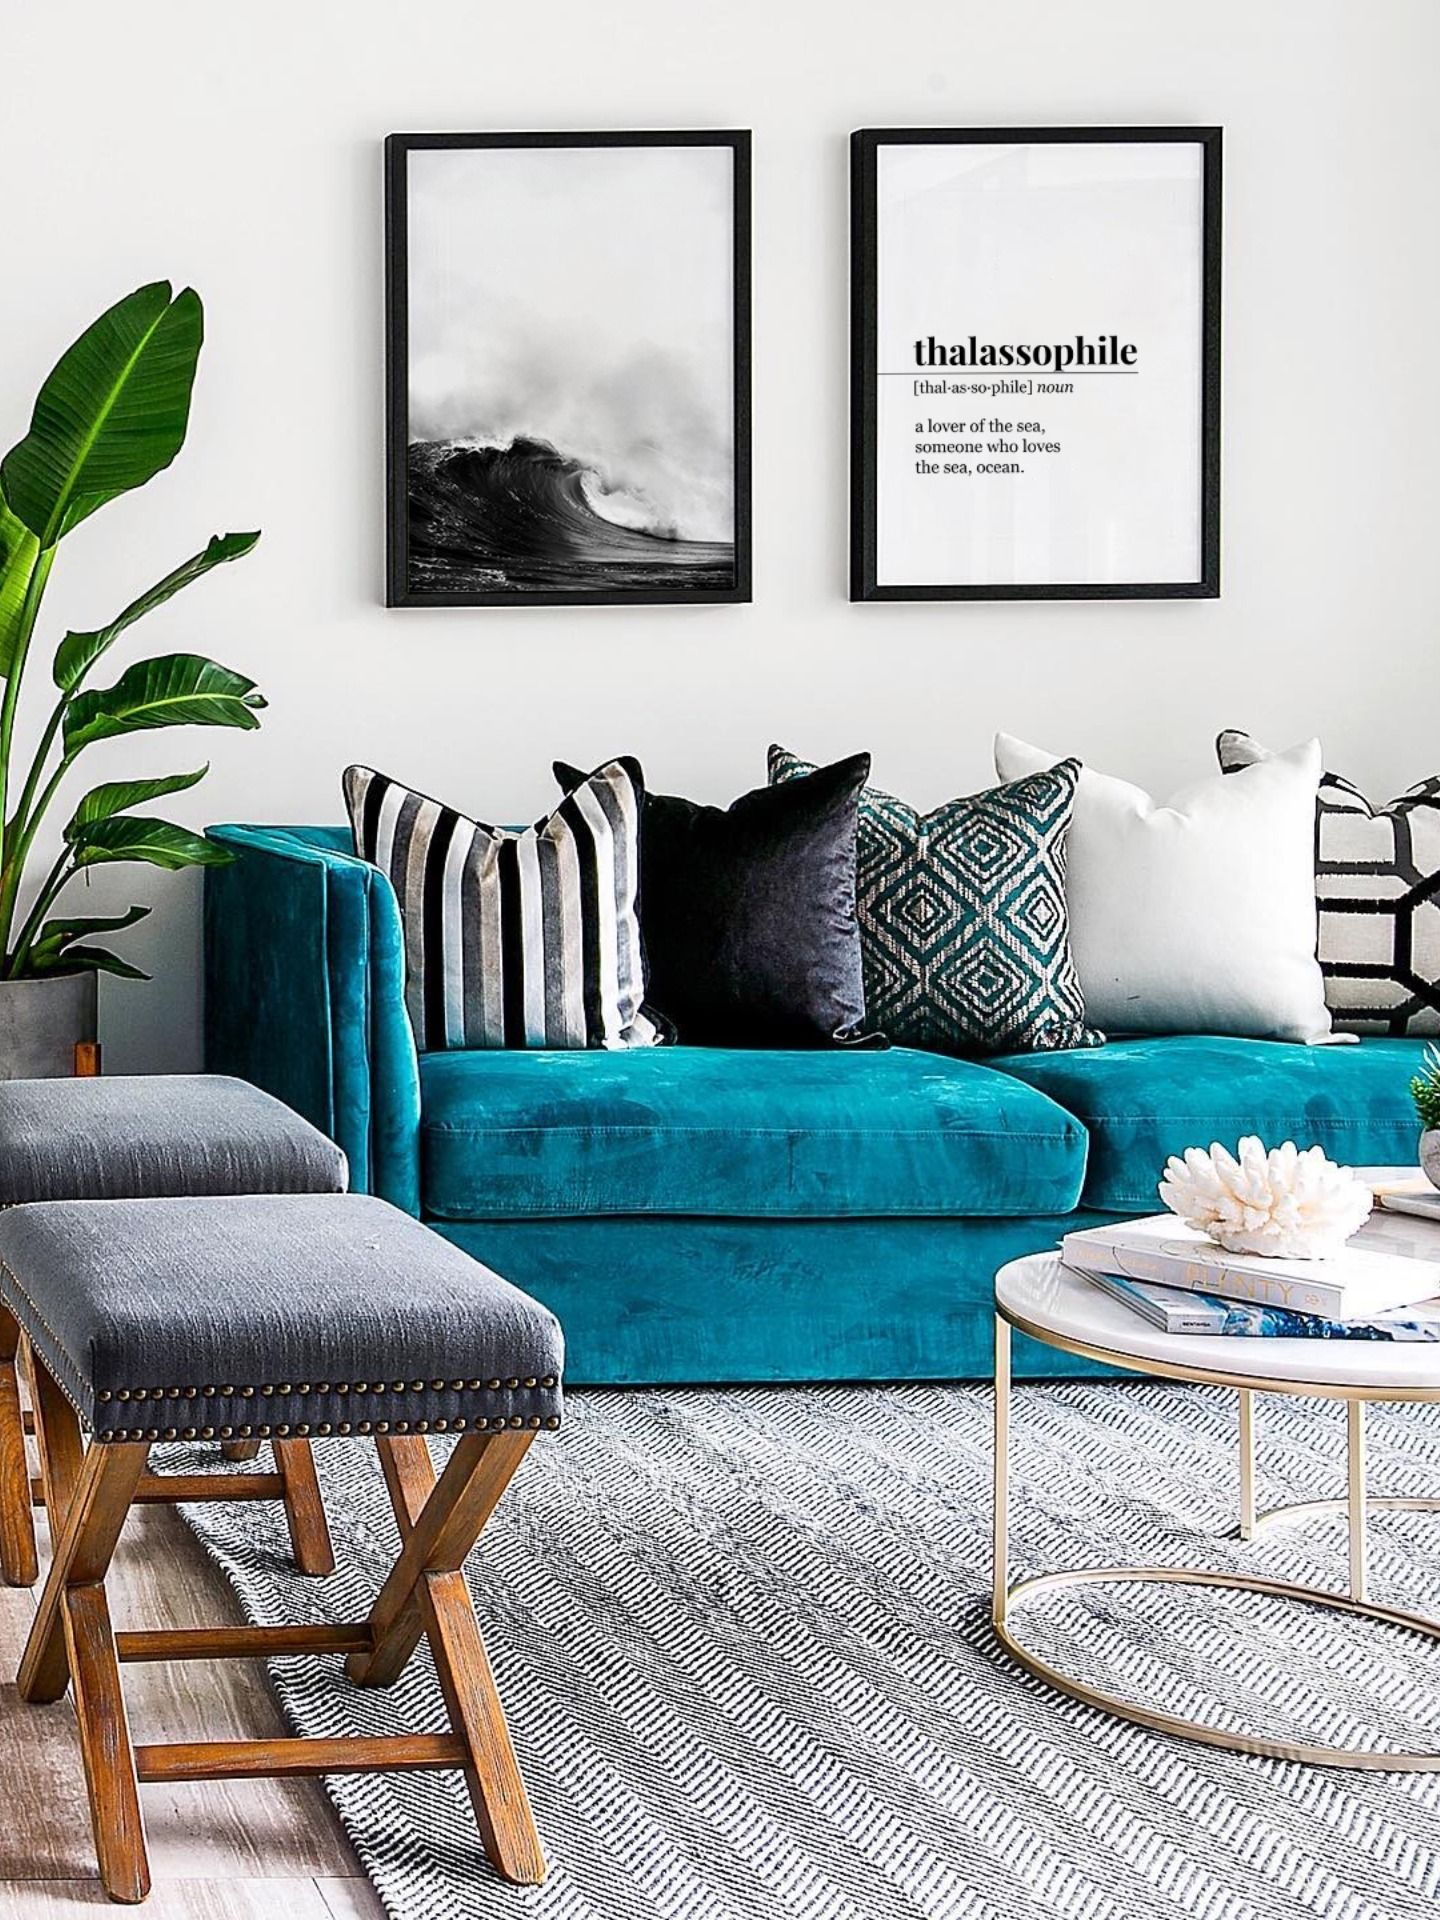 Thalassophile Definition Print Ocean Poster Beach Print Marine Biology Sea Life Surfer Poster Minimalist Wall Art Scandinavian Decor Teal Sofa Living Room Blue Sofas Living Room Living Room Turquoise